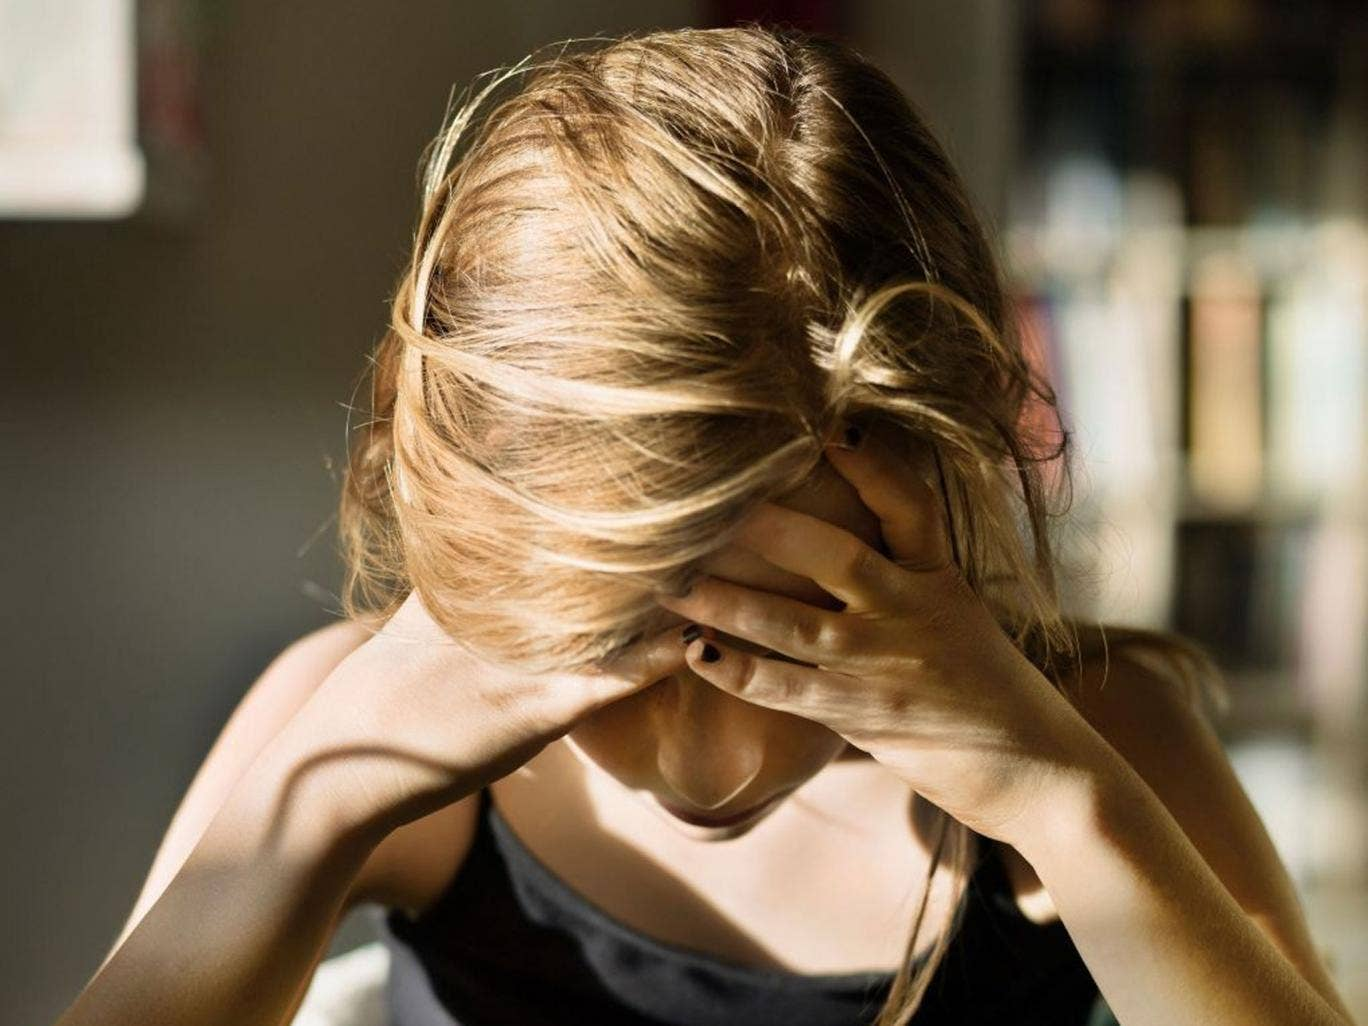 Eating disorders are most prevalent among girls of secondary school age